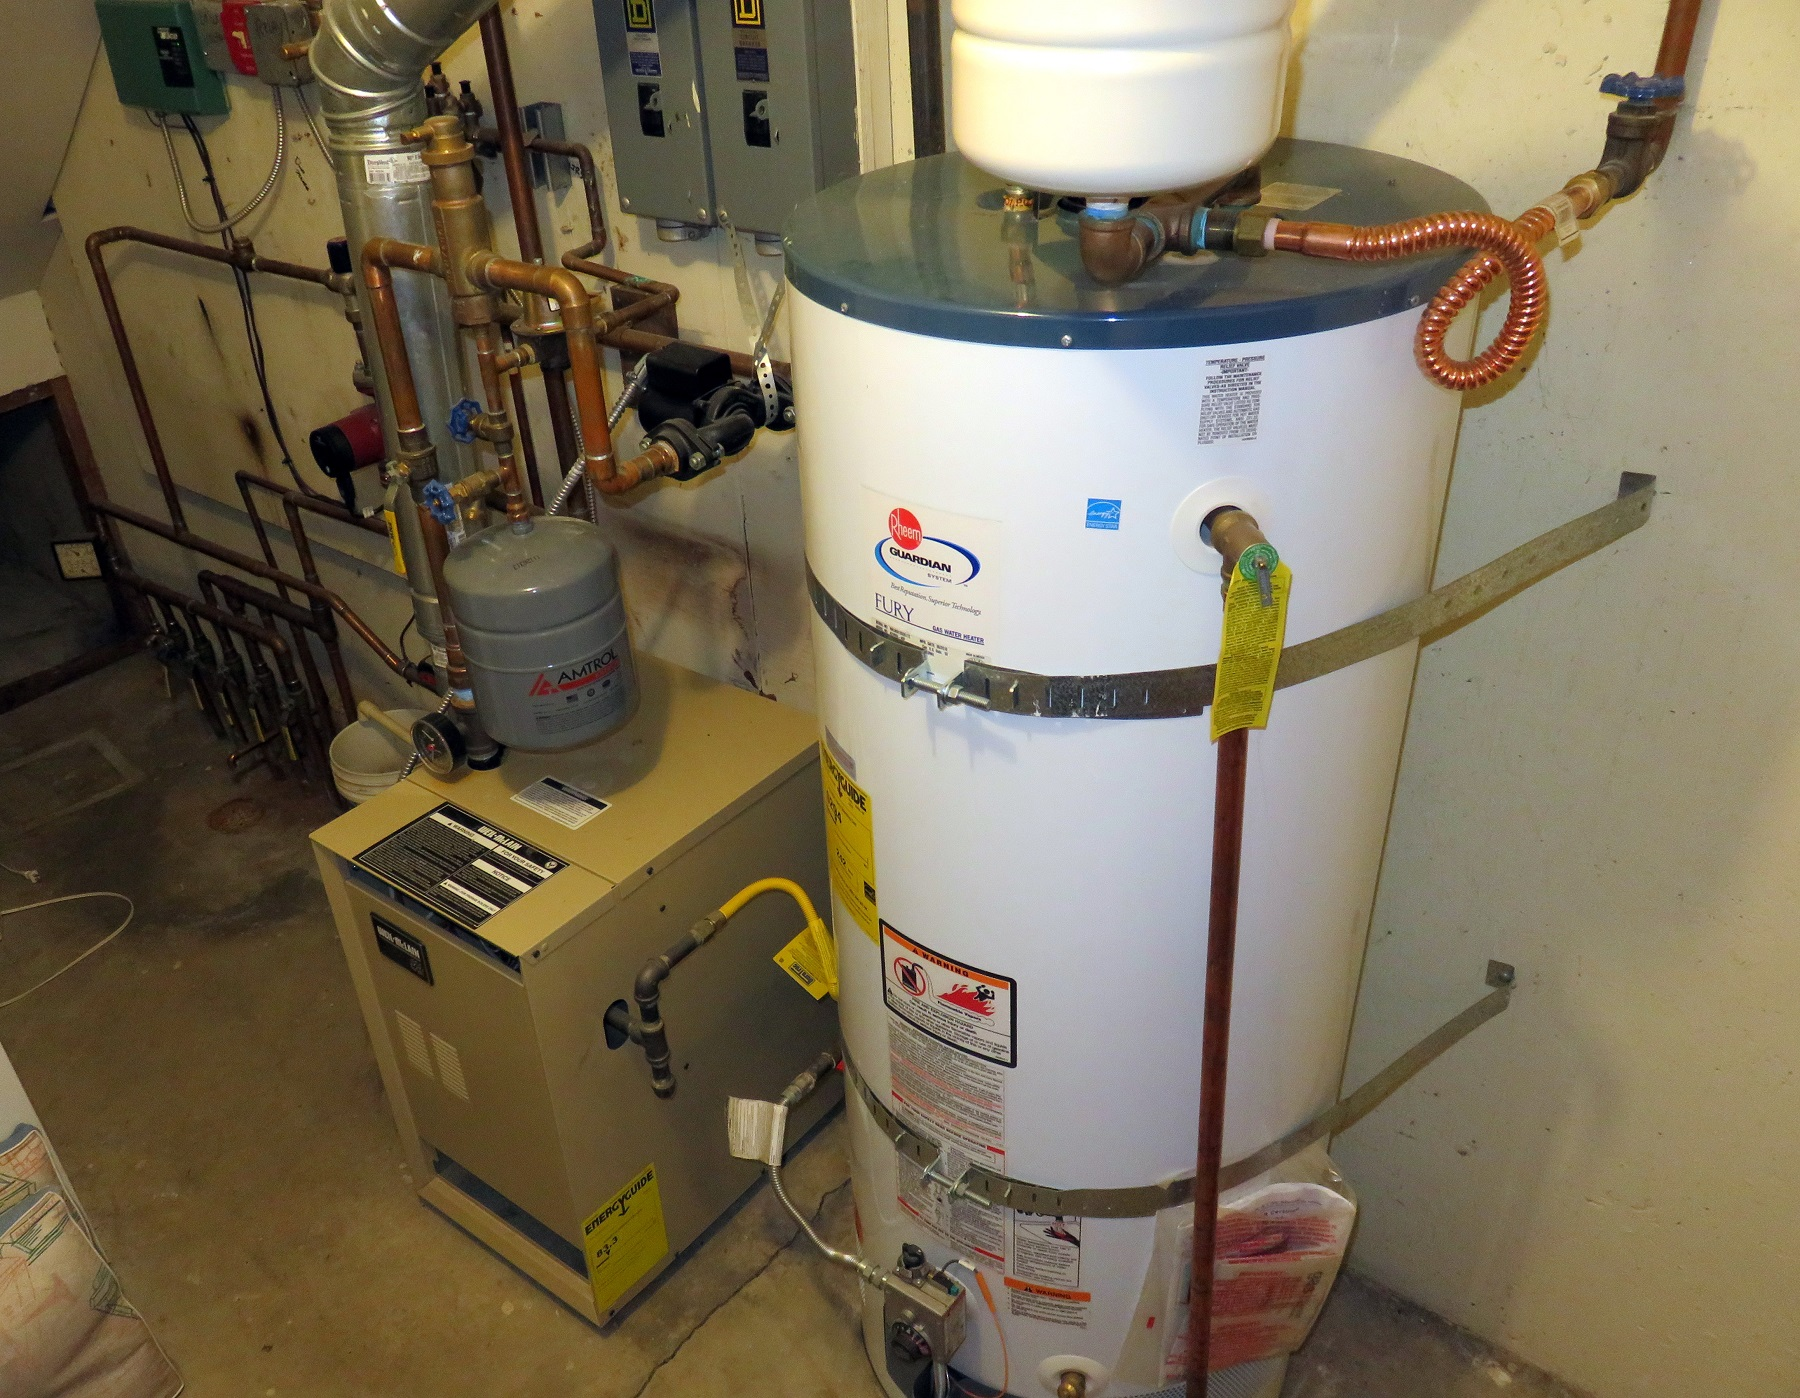 Buildings account for the second biggest share of carbon pollution in Washington, after transportation, largely due to gas furnaces and water heaters such as these.